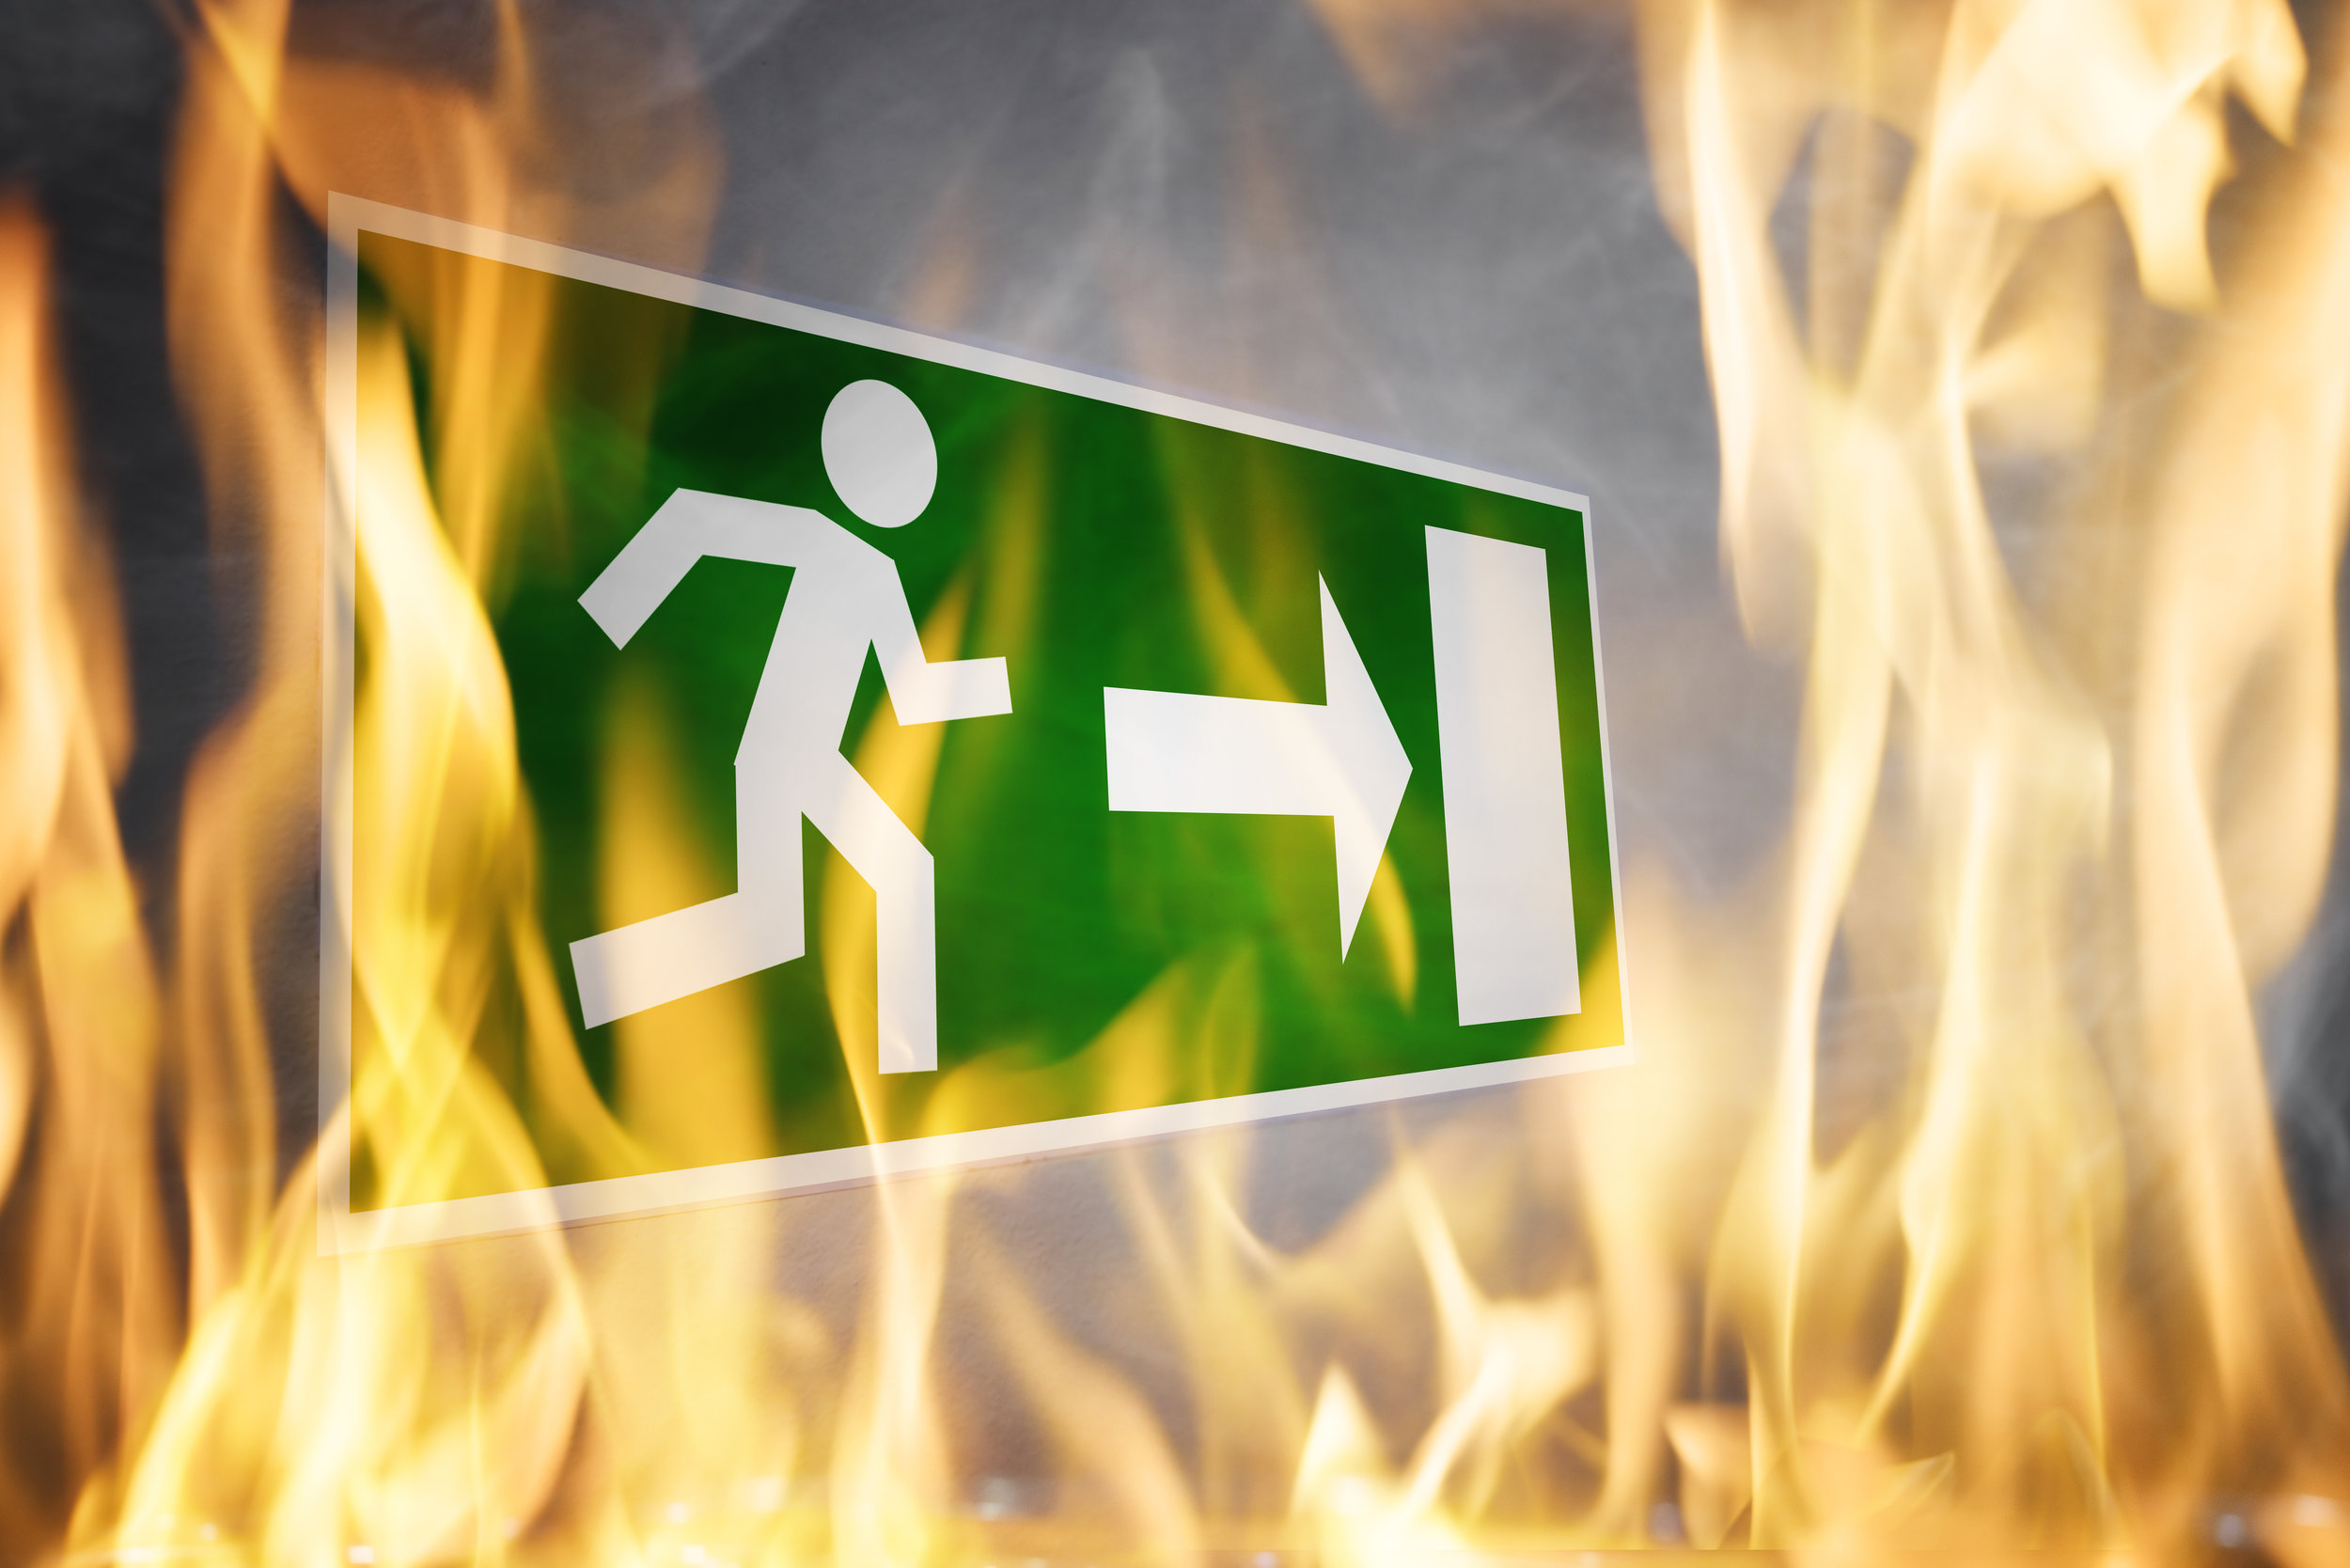 Close-up Of Emergency Fire Exit Board